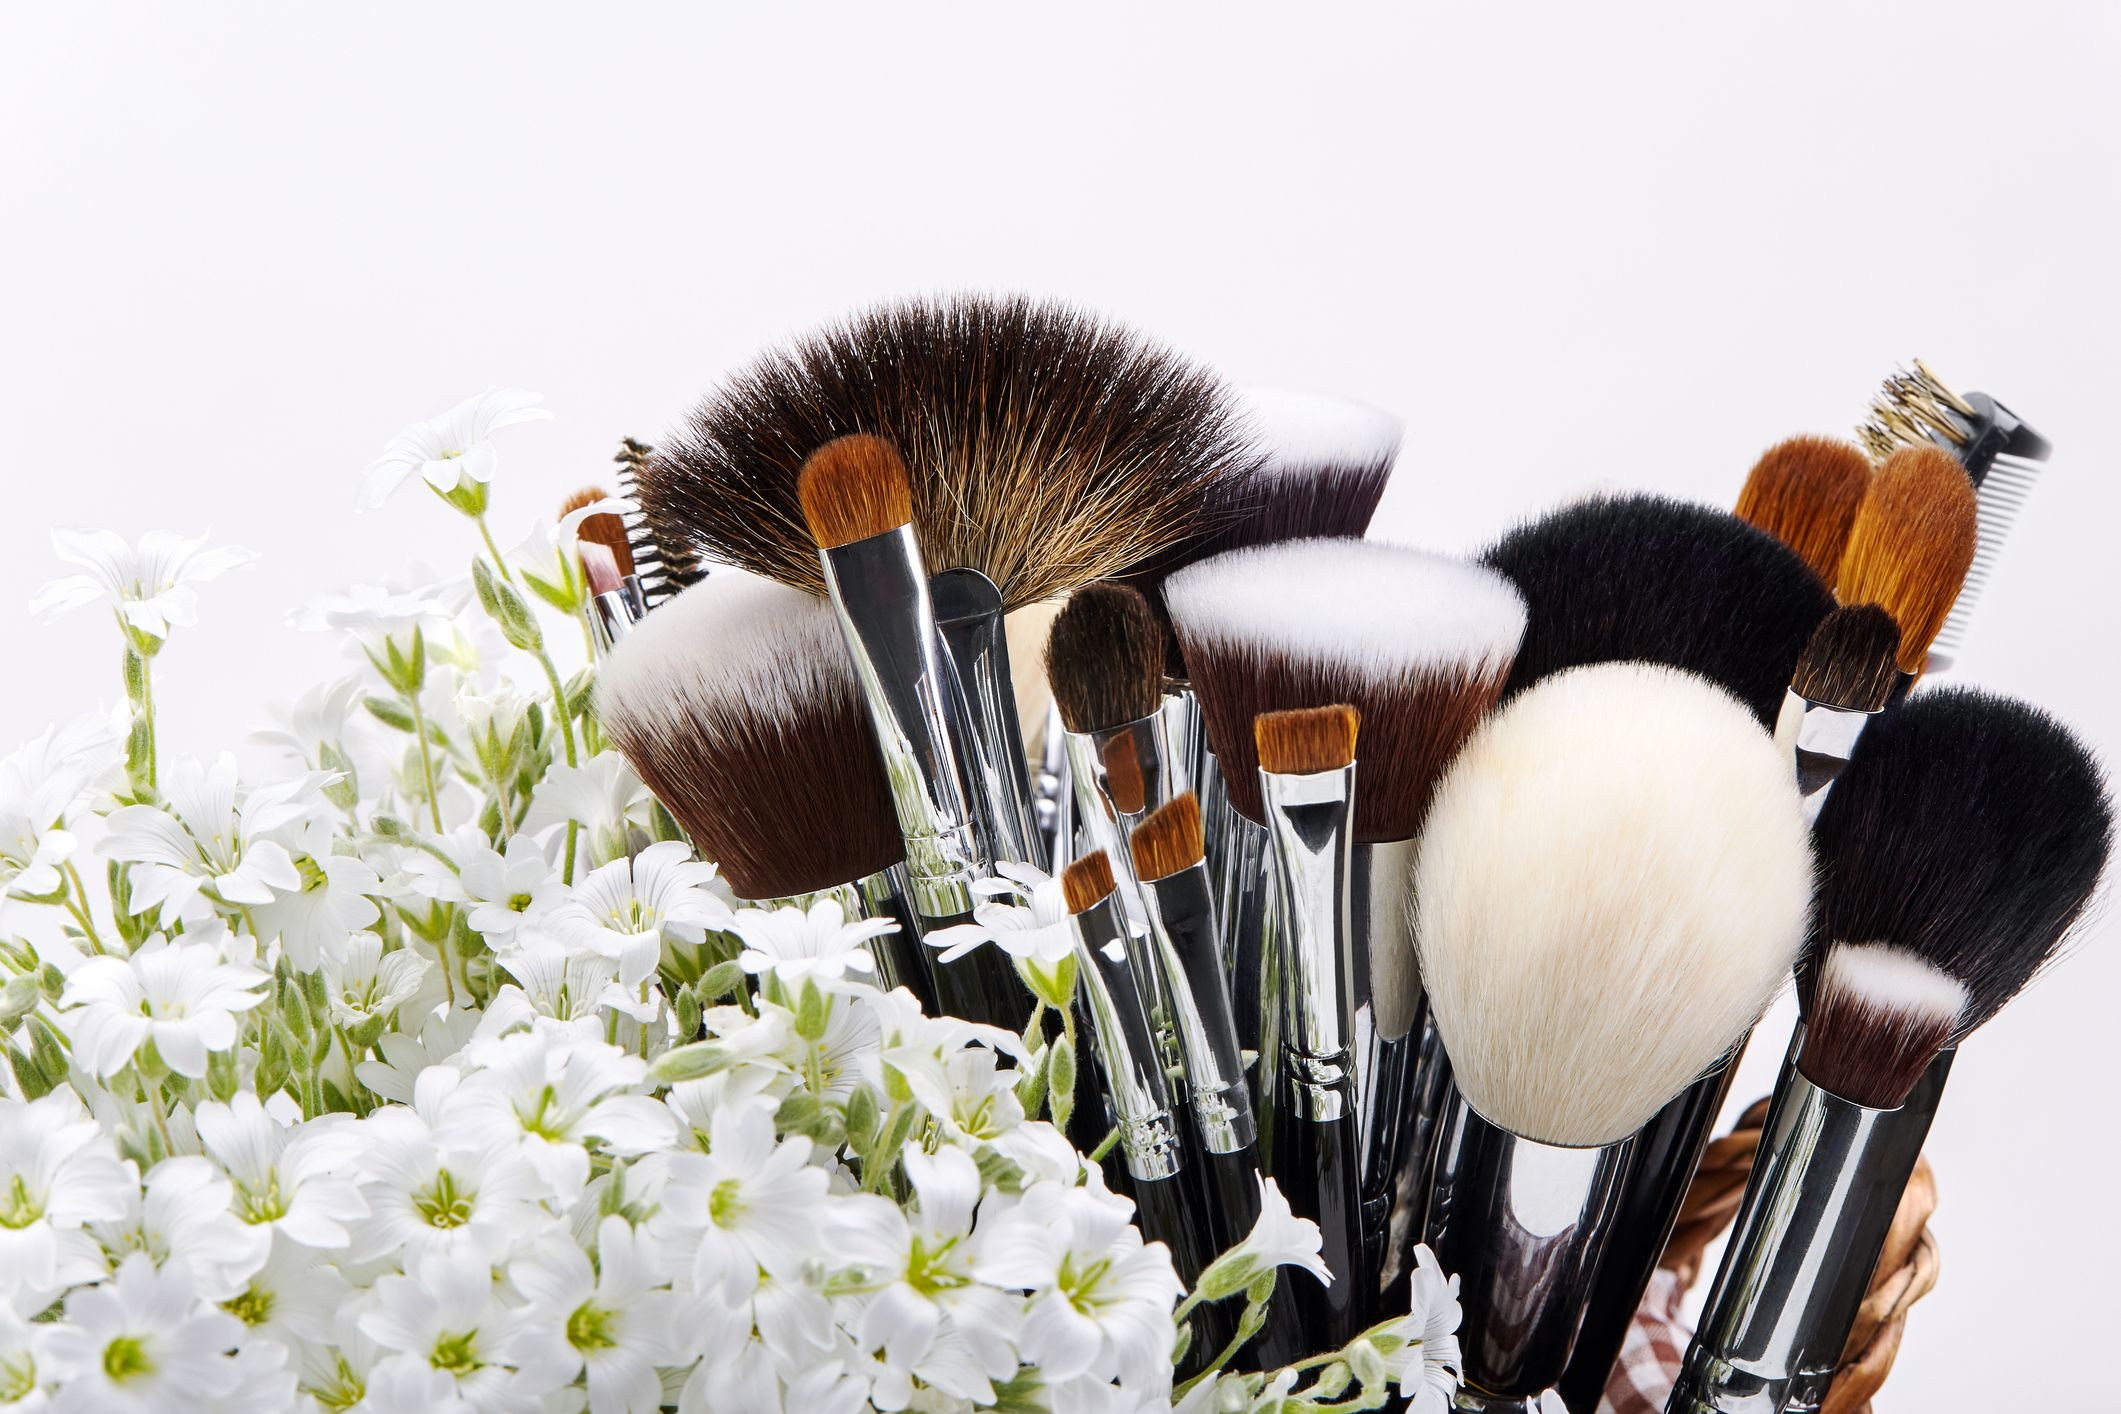 How often do you give your makeup brushes a good clean? If